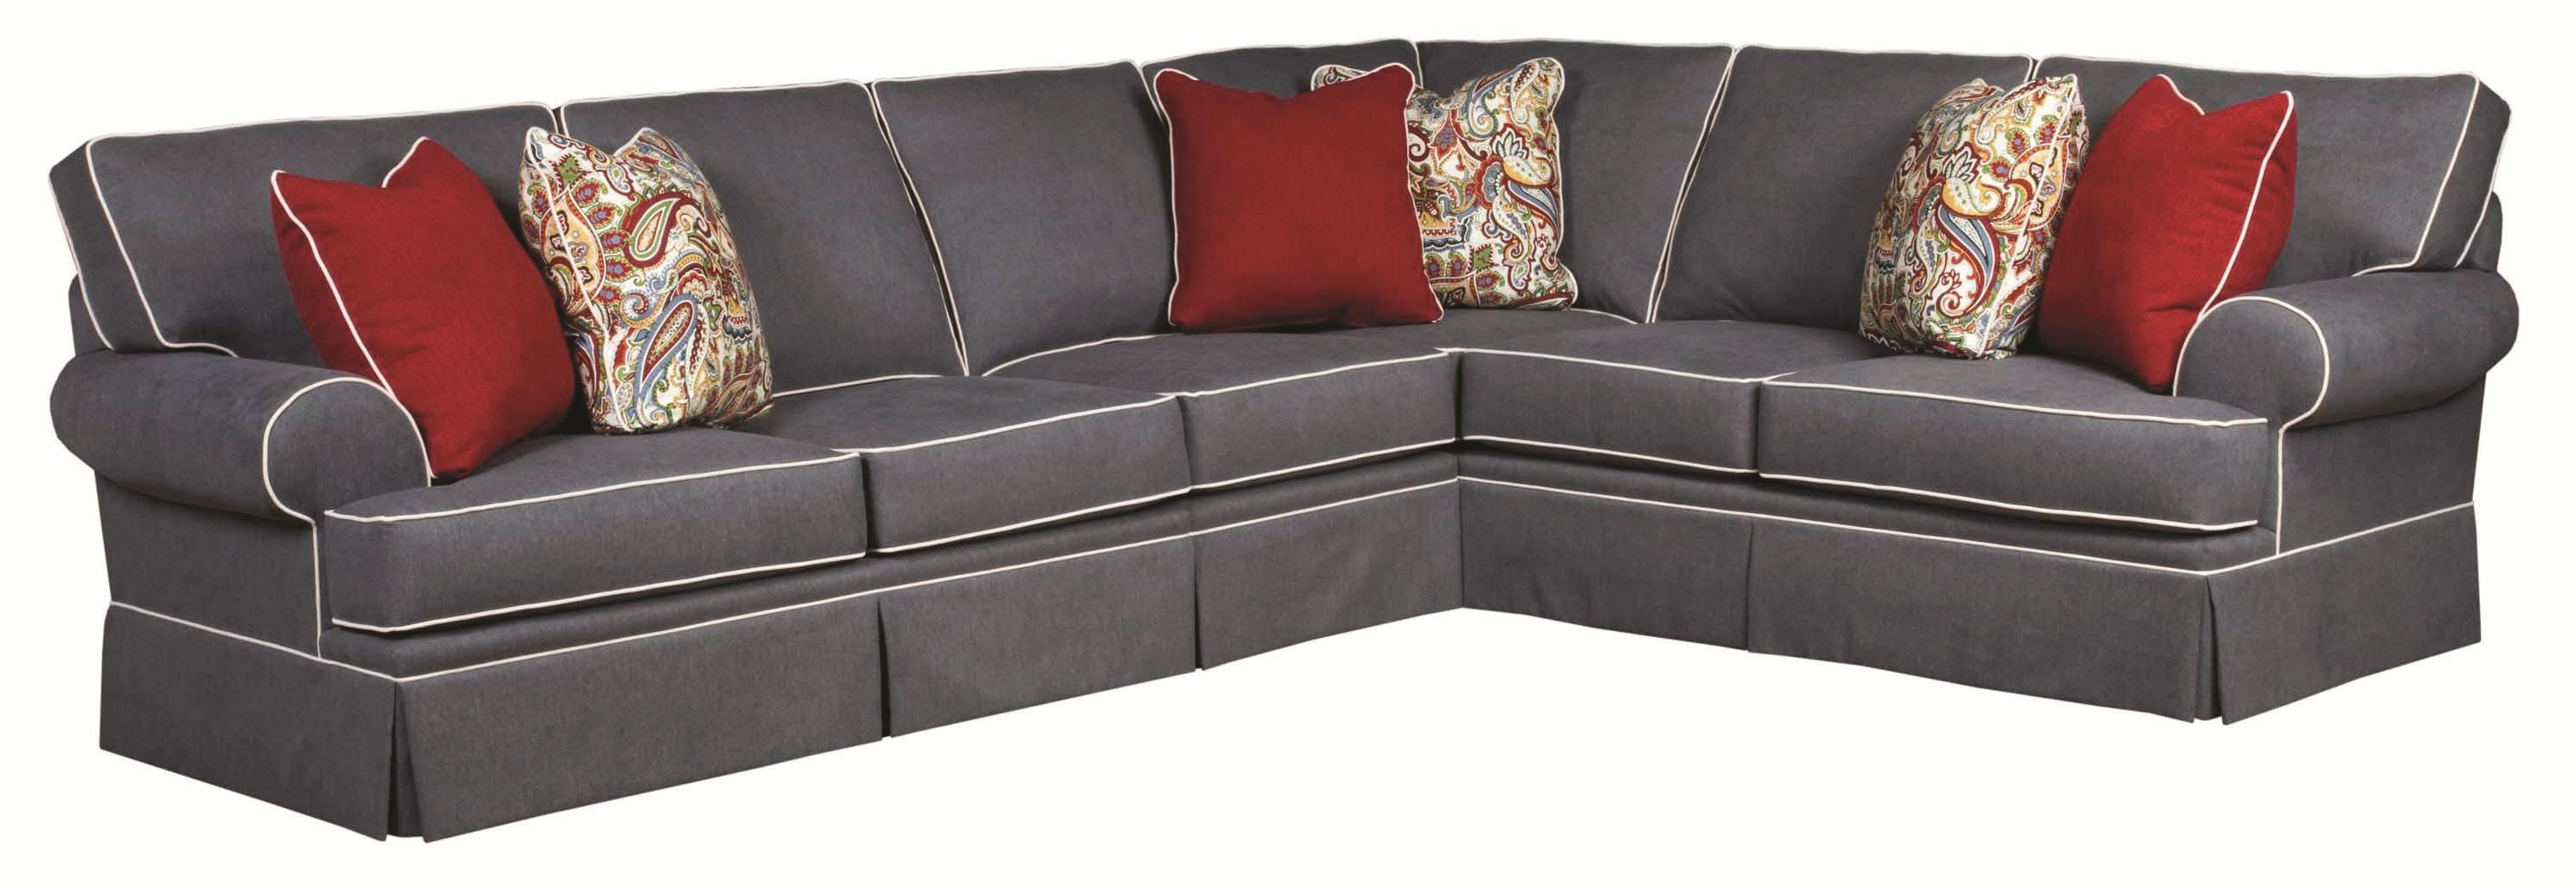 Broyhill Furniture Emily Traditional 3 Piece Sectional Sofa With Intended For Broyhill Sectional Sofa (Image 1 of 15)